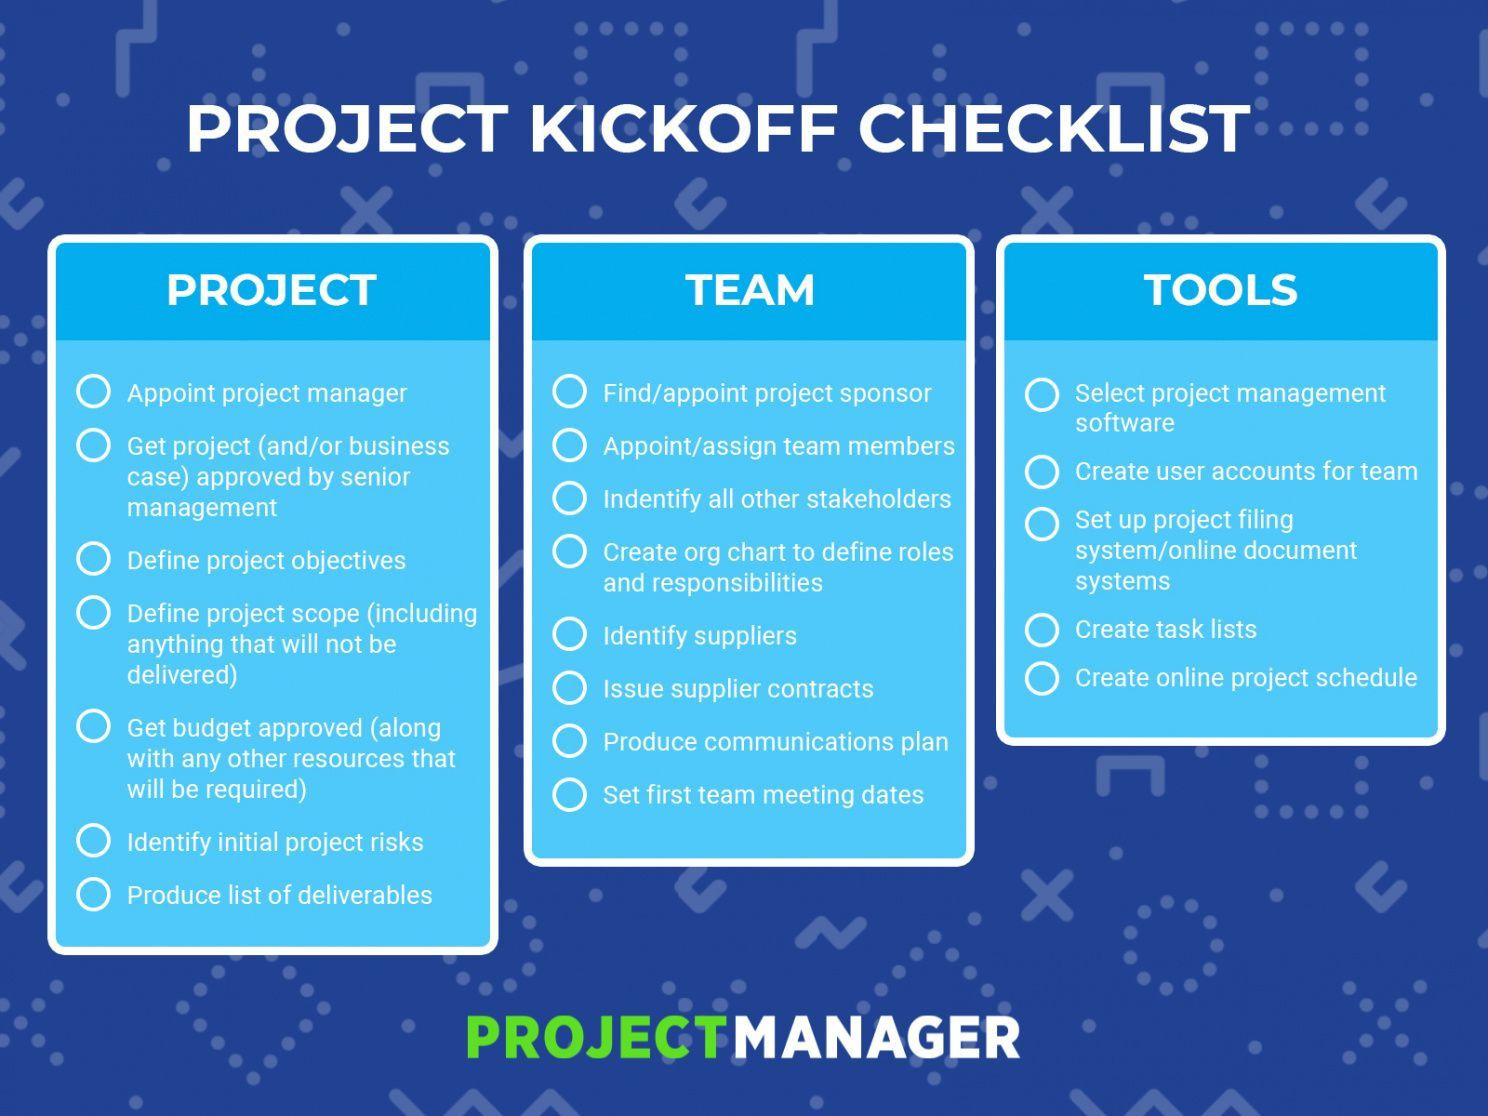 005 Impressive Project Kickoff Meeting Powerpoint Template Ppt Sample  Kick Off PresentationFull